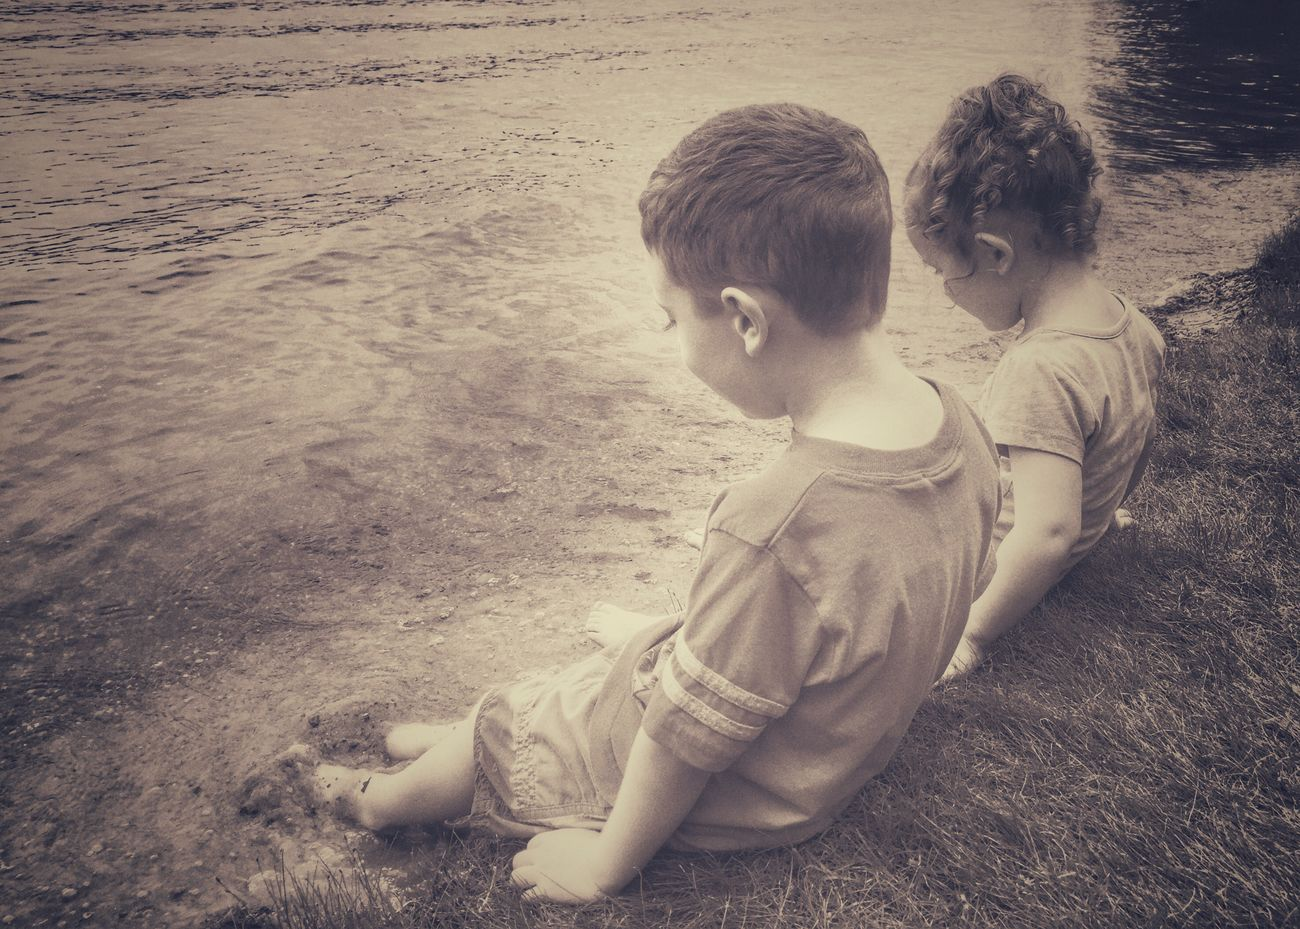 Summertime IPhoneography Lake Kids Beach Children Childhood Sand Toes In The Sand Waterfront Innocence Iphone6